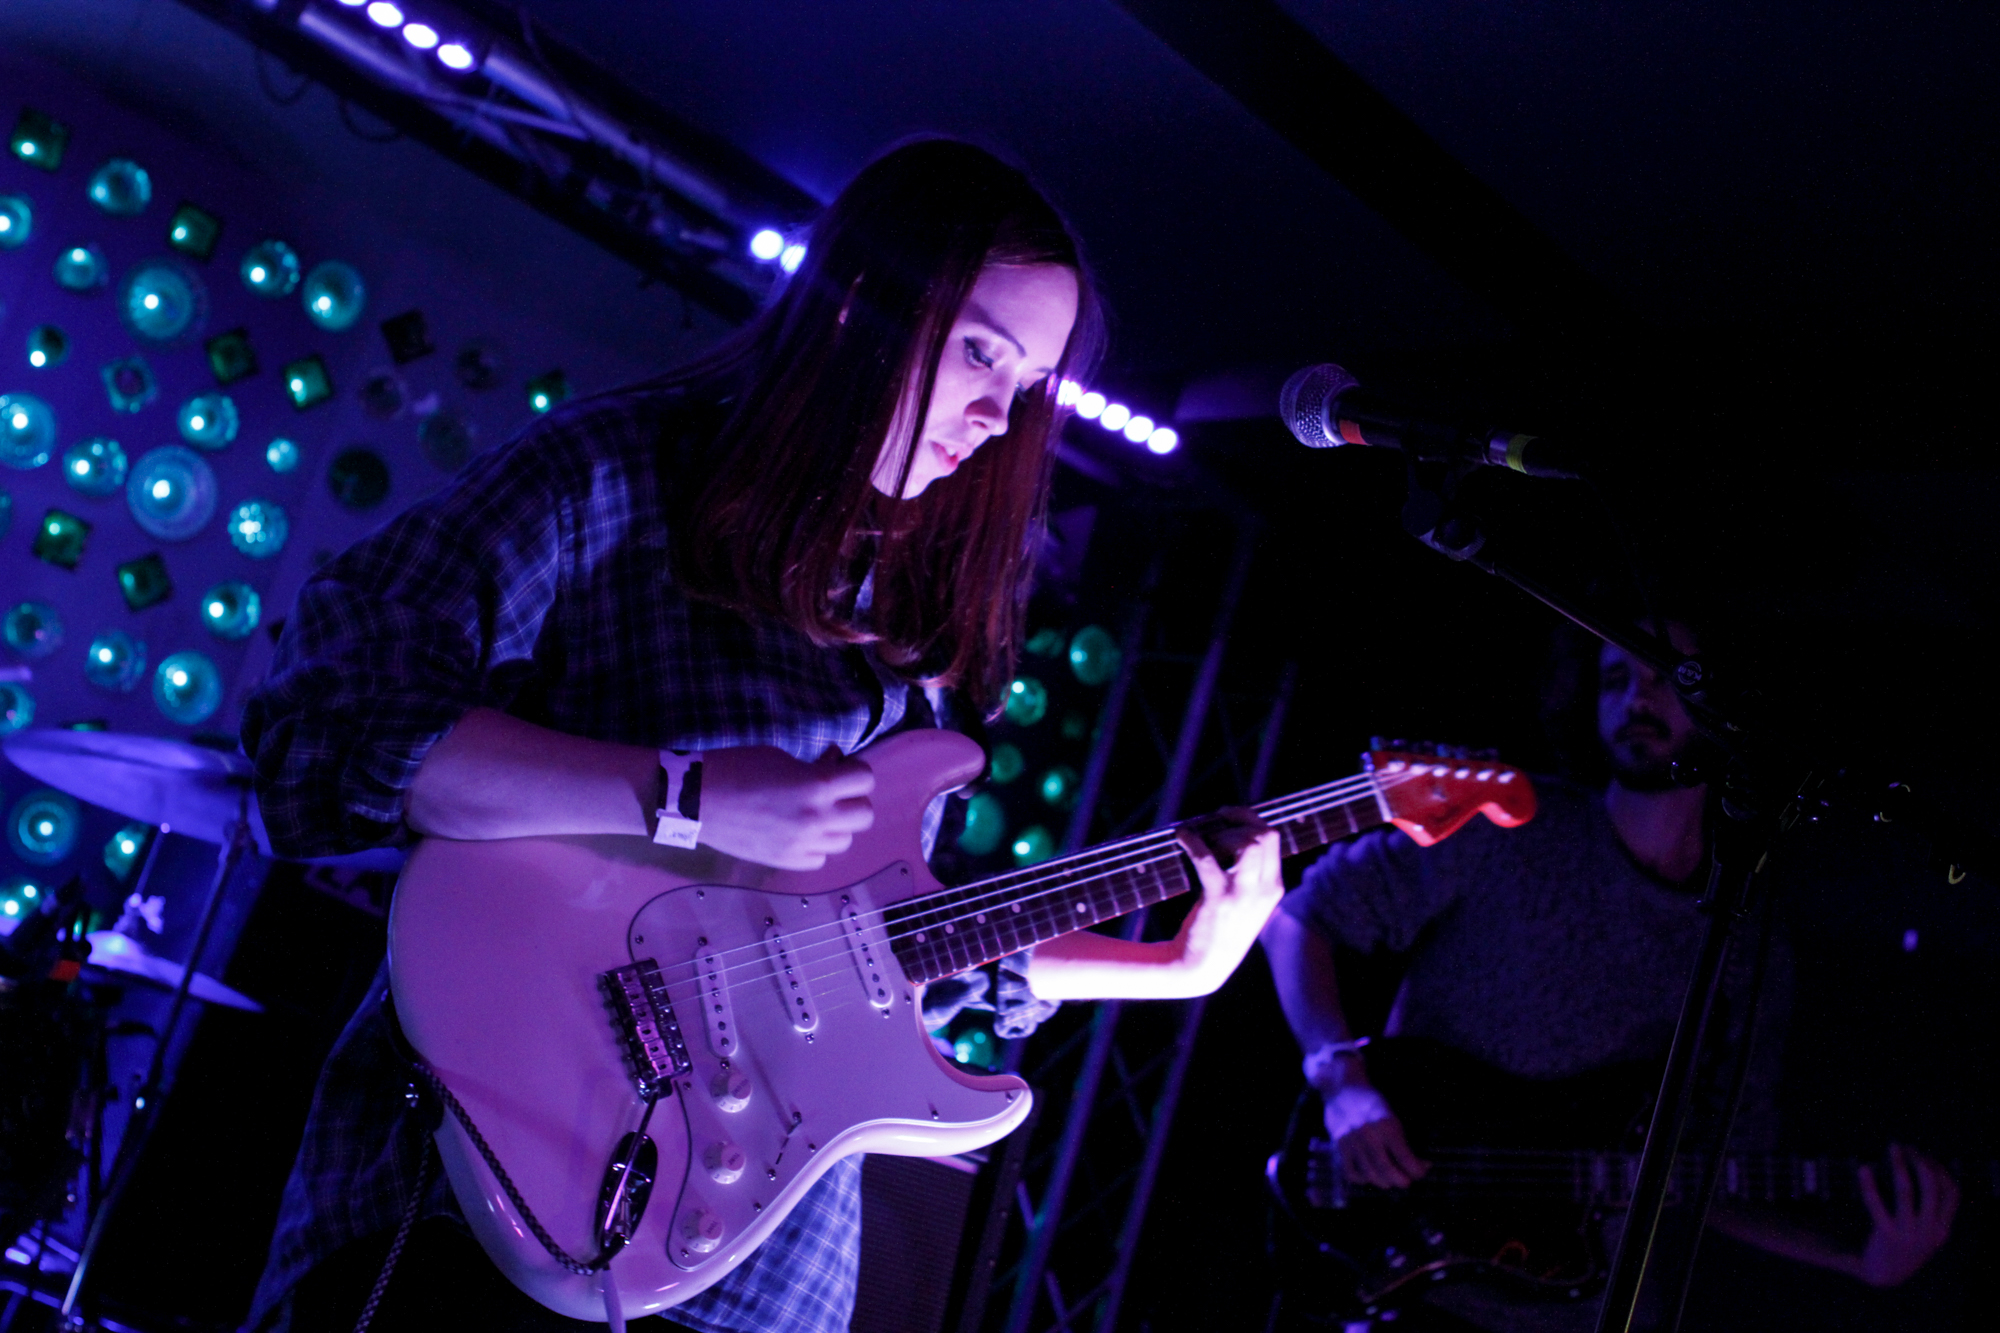 Soccer Mommy plays at Baby's All Right in Williamsburg, Brooklyn, New York on Nov. 14, 2017. (© Michael Katzif - Do not use or republish without prior consent.)